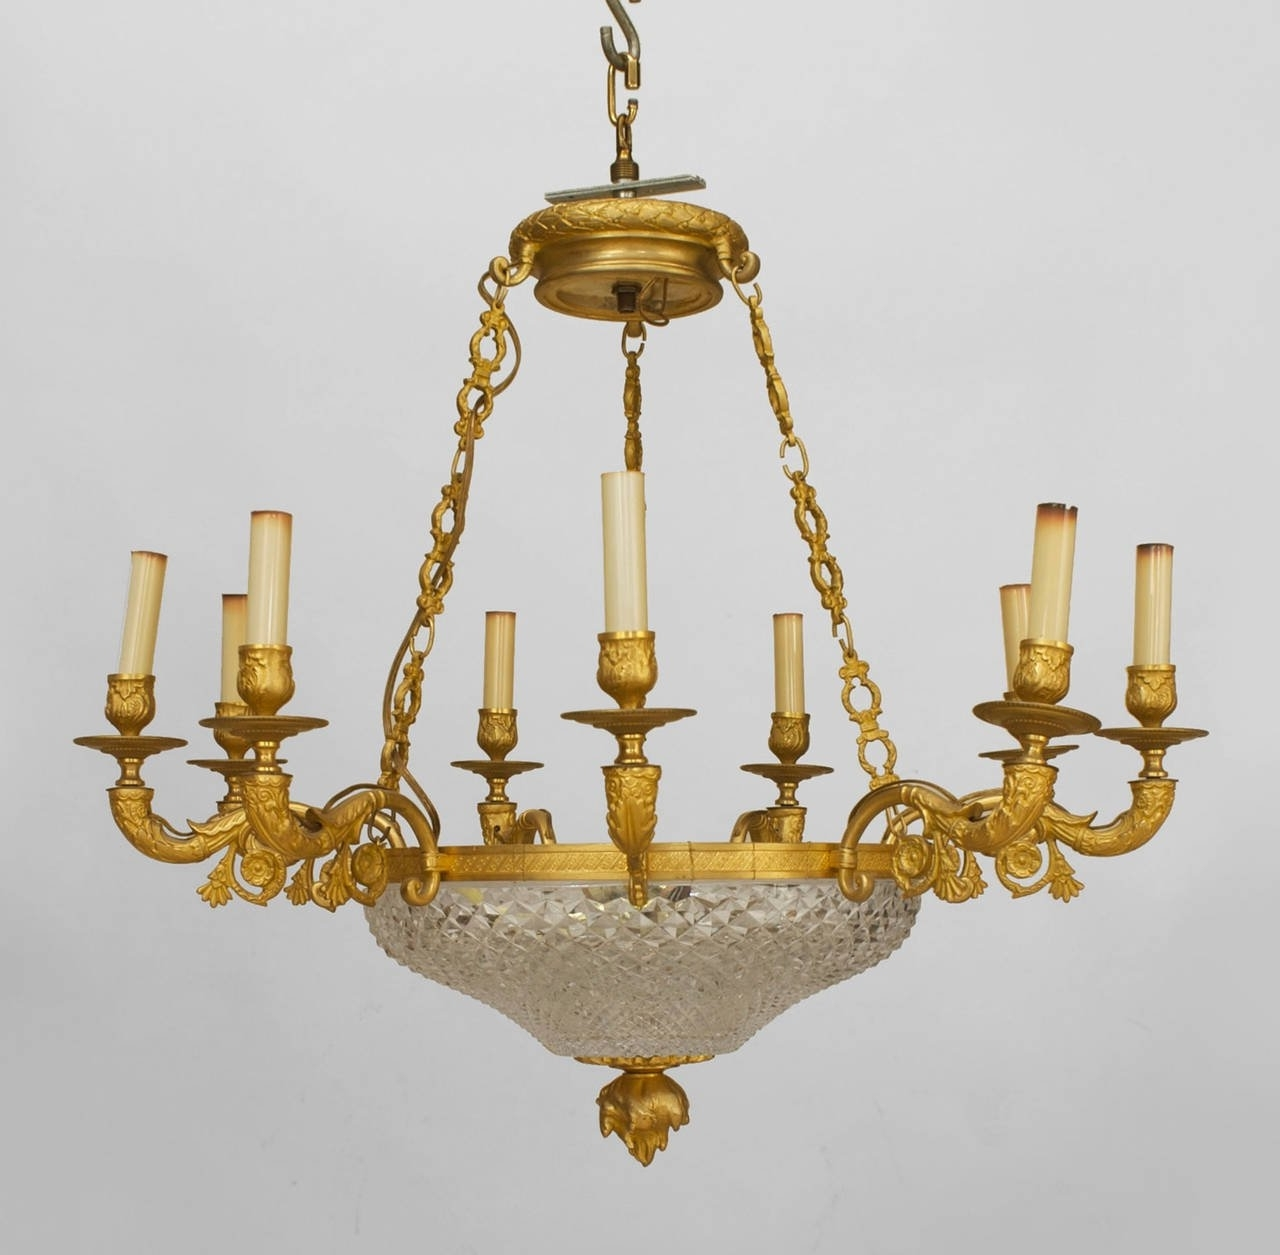 Newest French Bronze Chandelier With Regard To Late 19Th C. French Empire Style Gilt Bronze And Crystal Chandelier (Gallery 11 of 20)